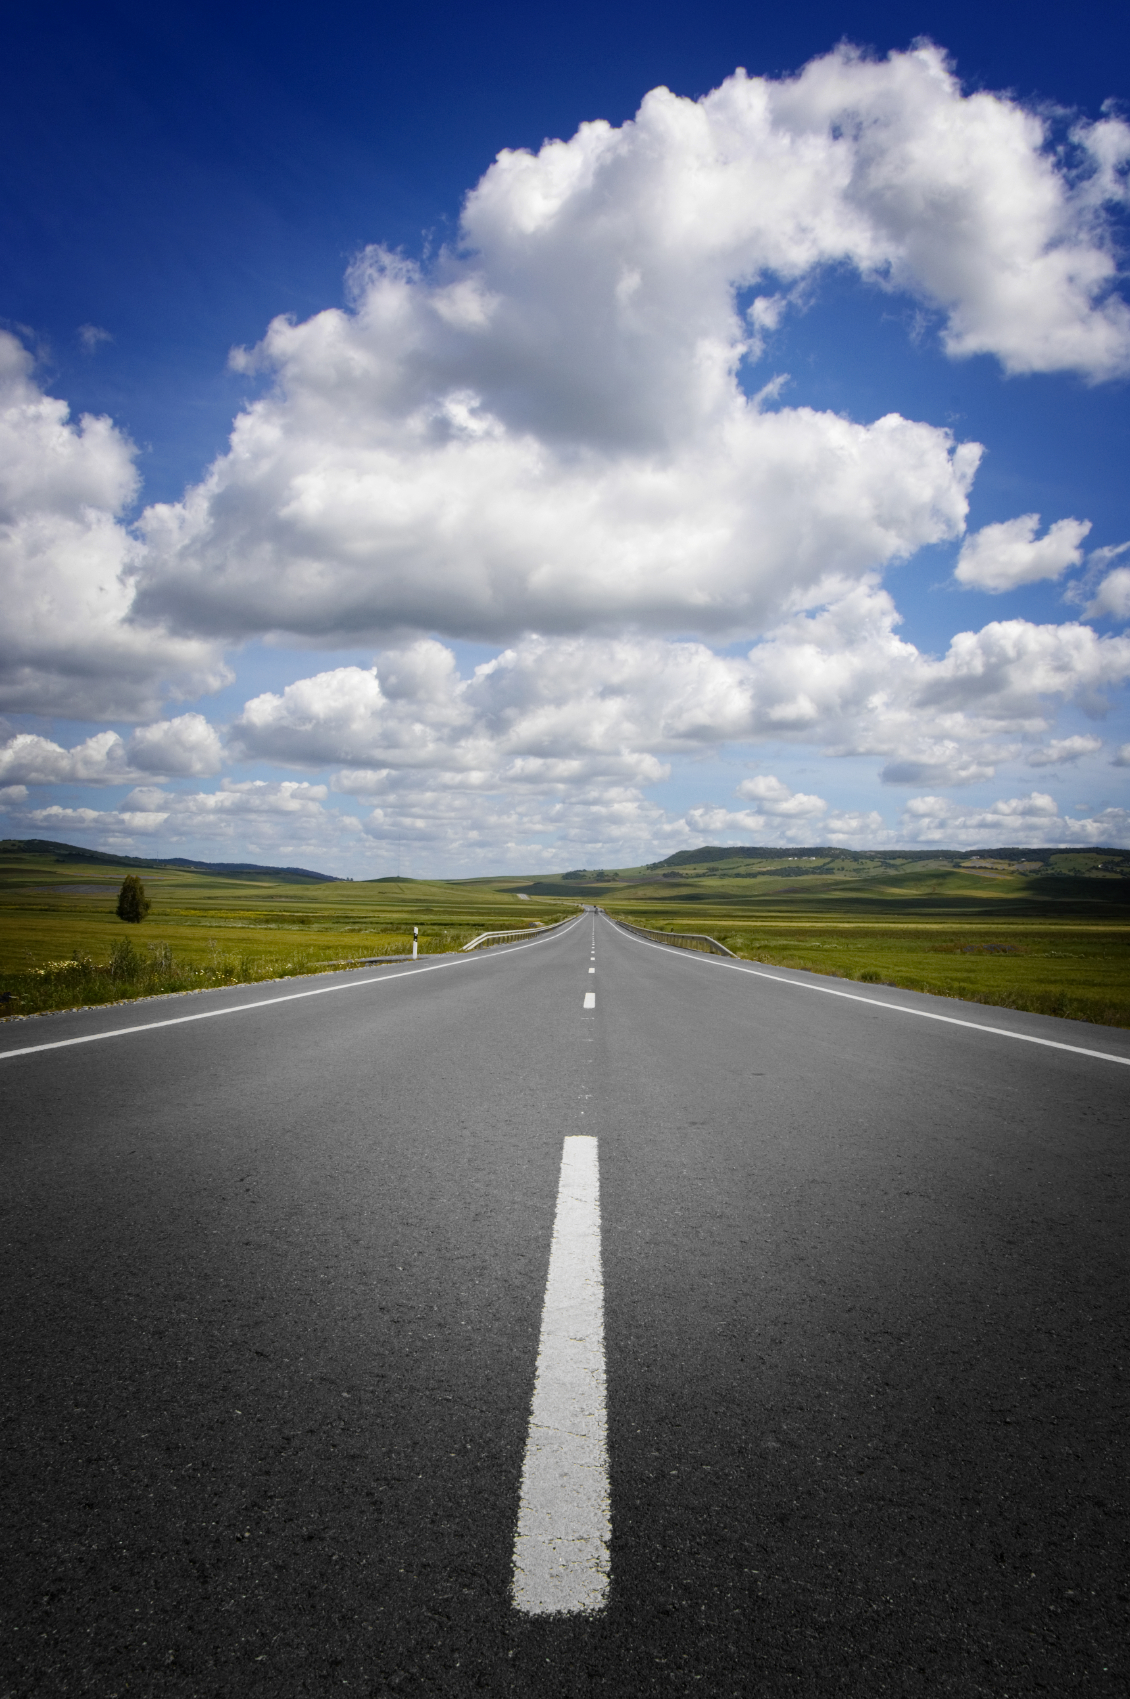 Road Transport: Who's in the driving seat